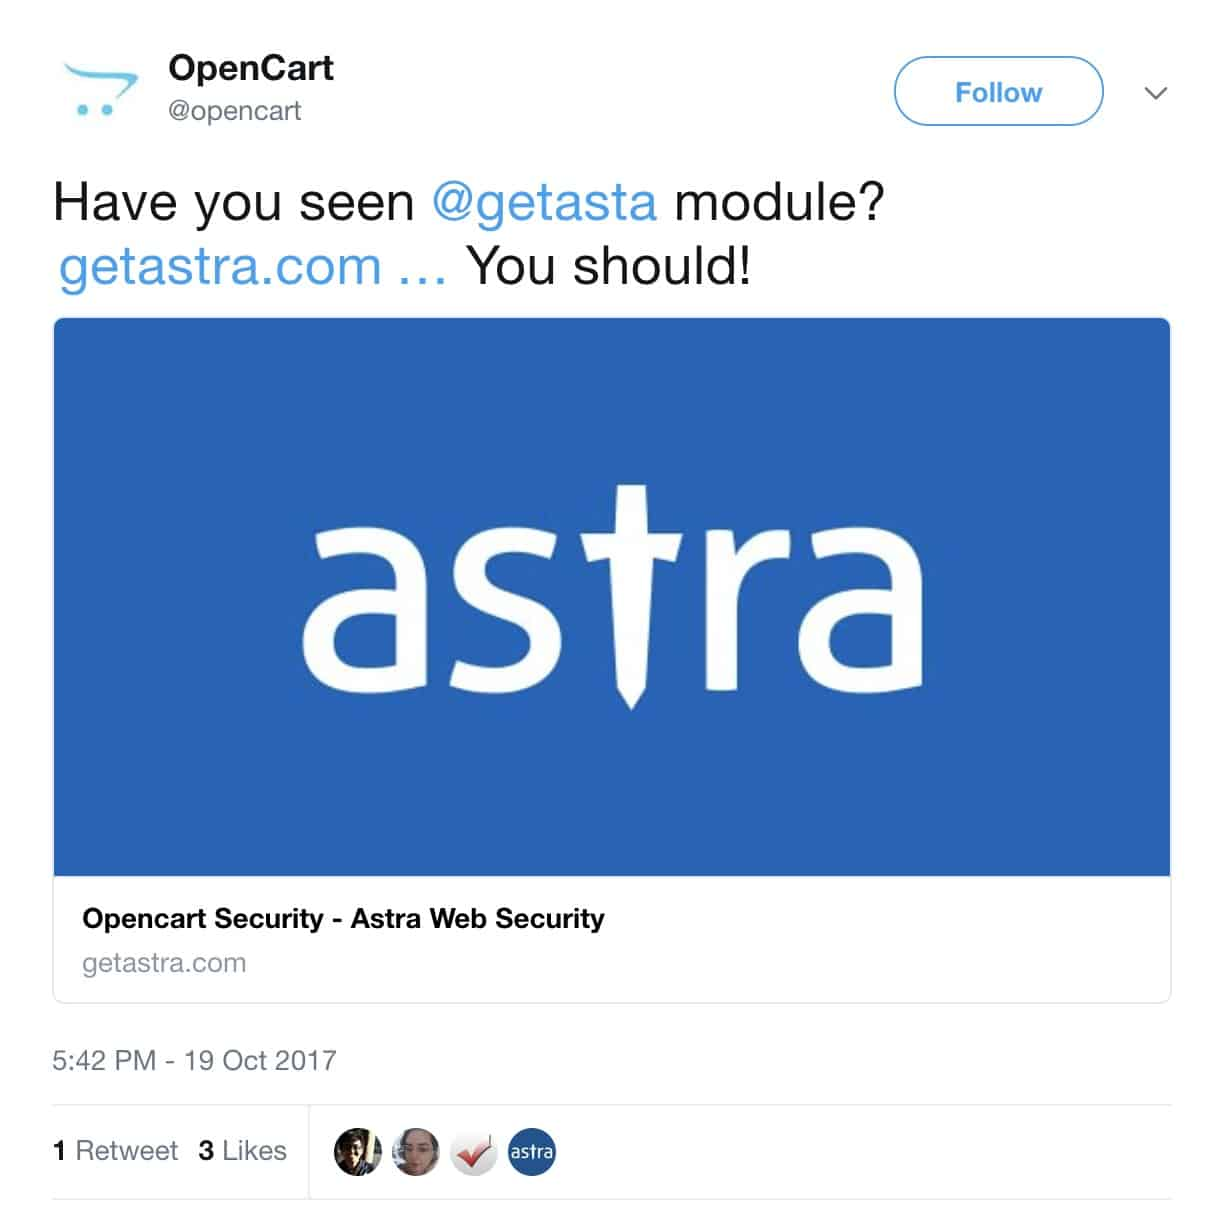 Opencart tweets about Astra